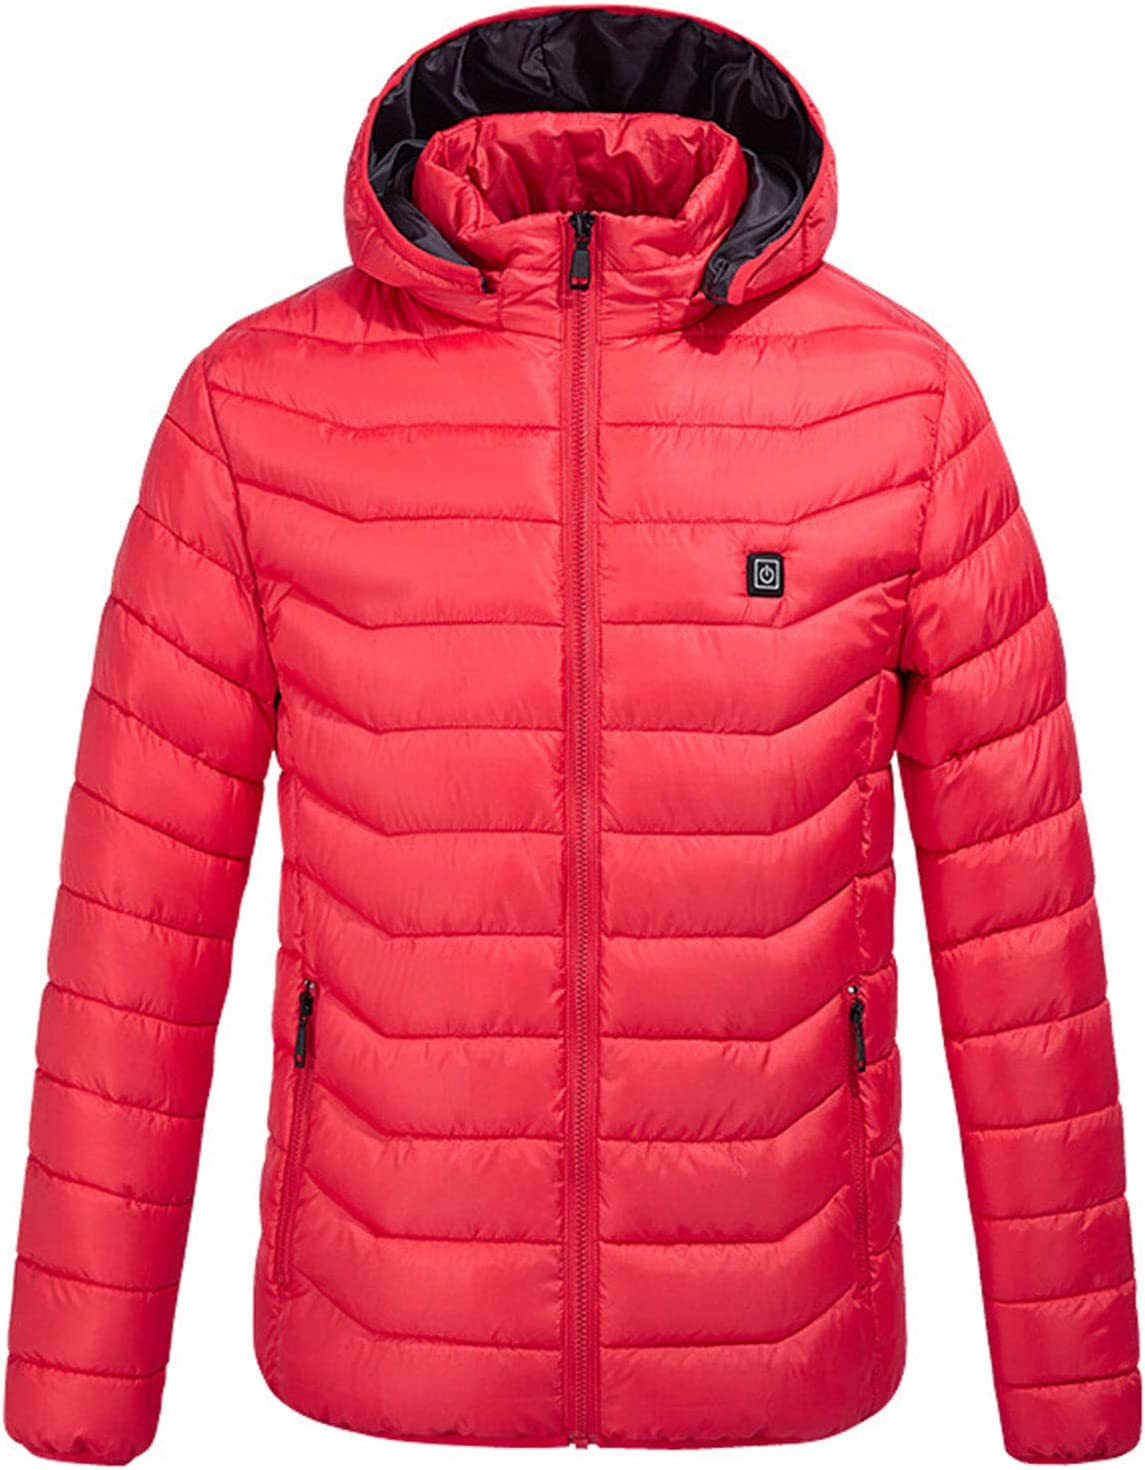 DALLL Heated Jacket Men's Electric Heated Jacket for Outdoor Work and Daily wear,Red,L